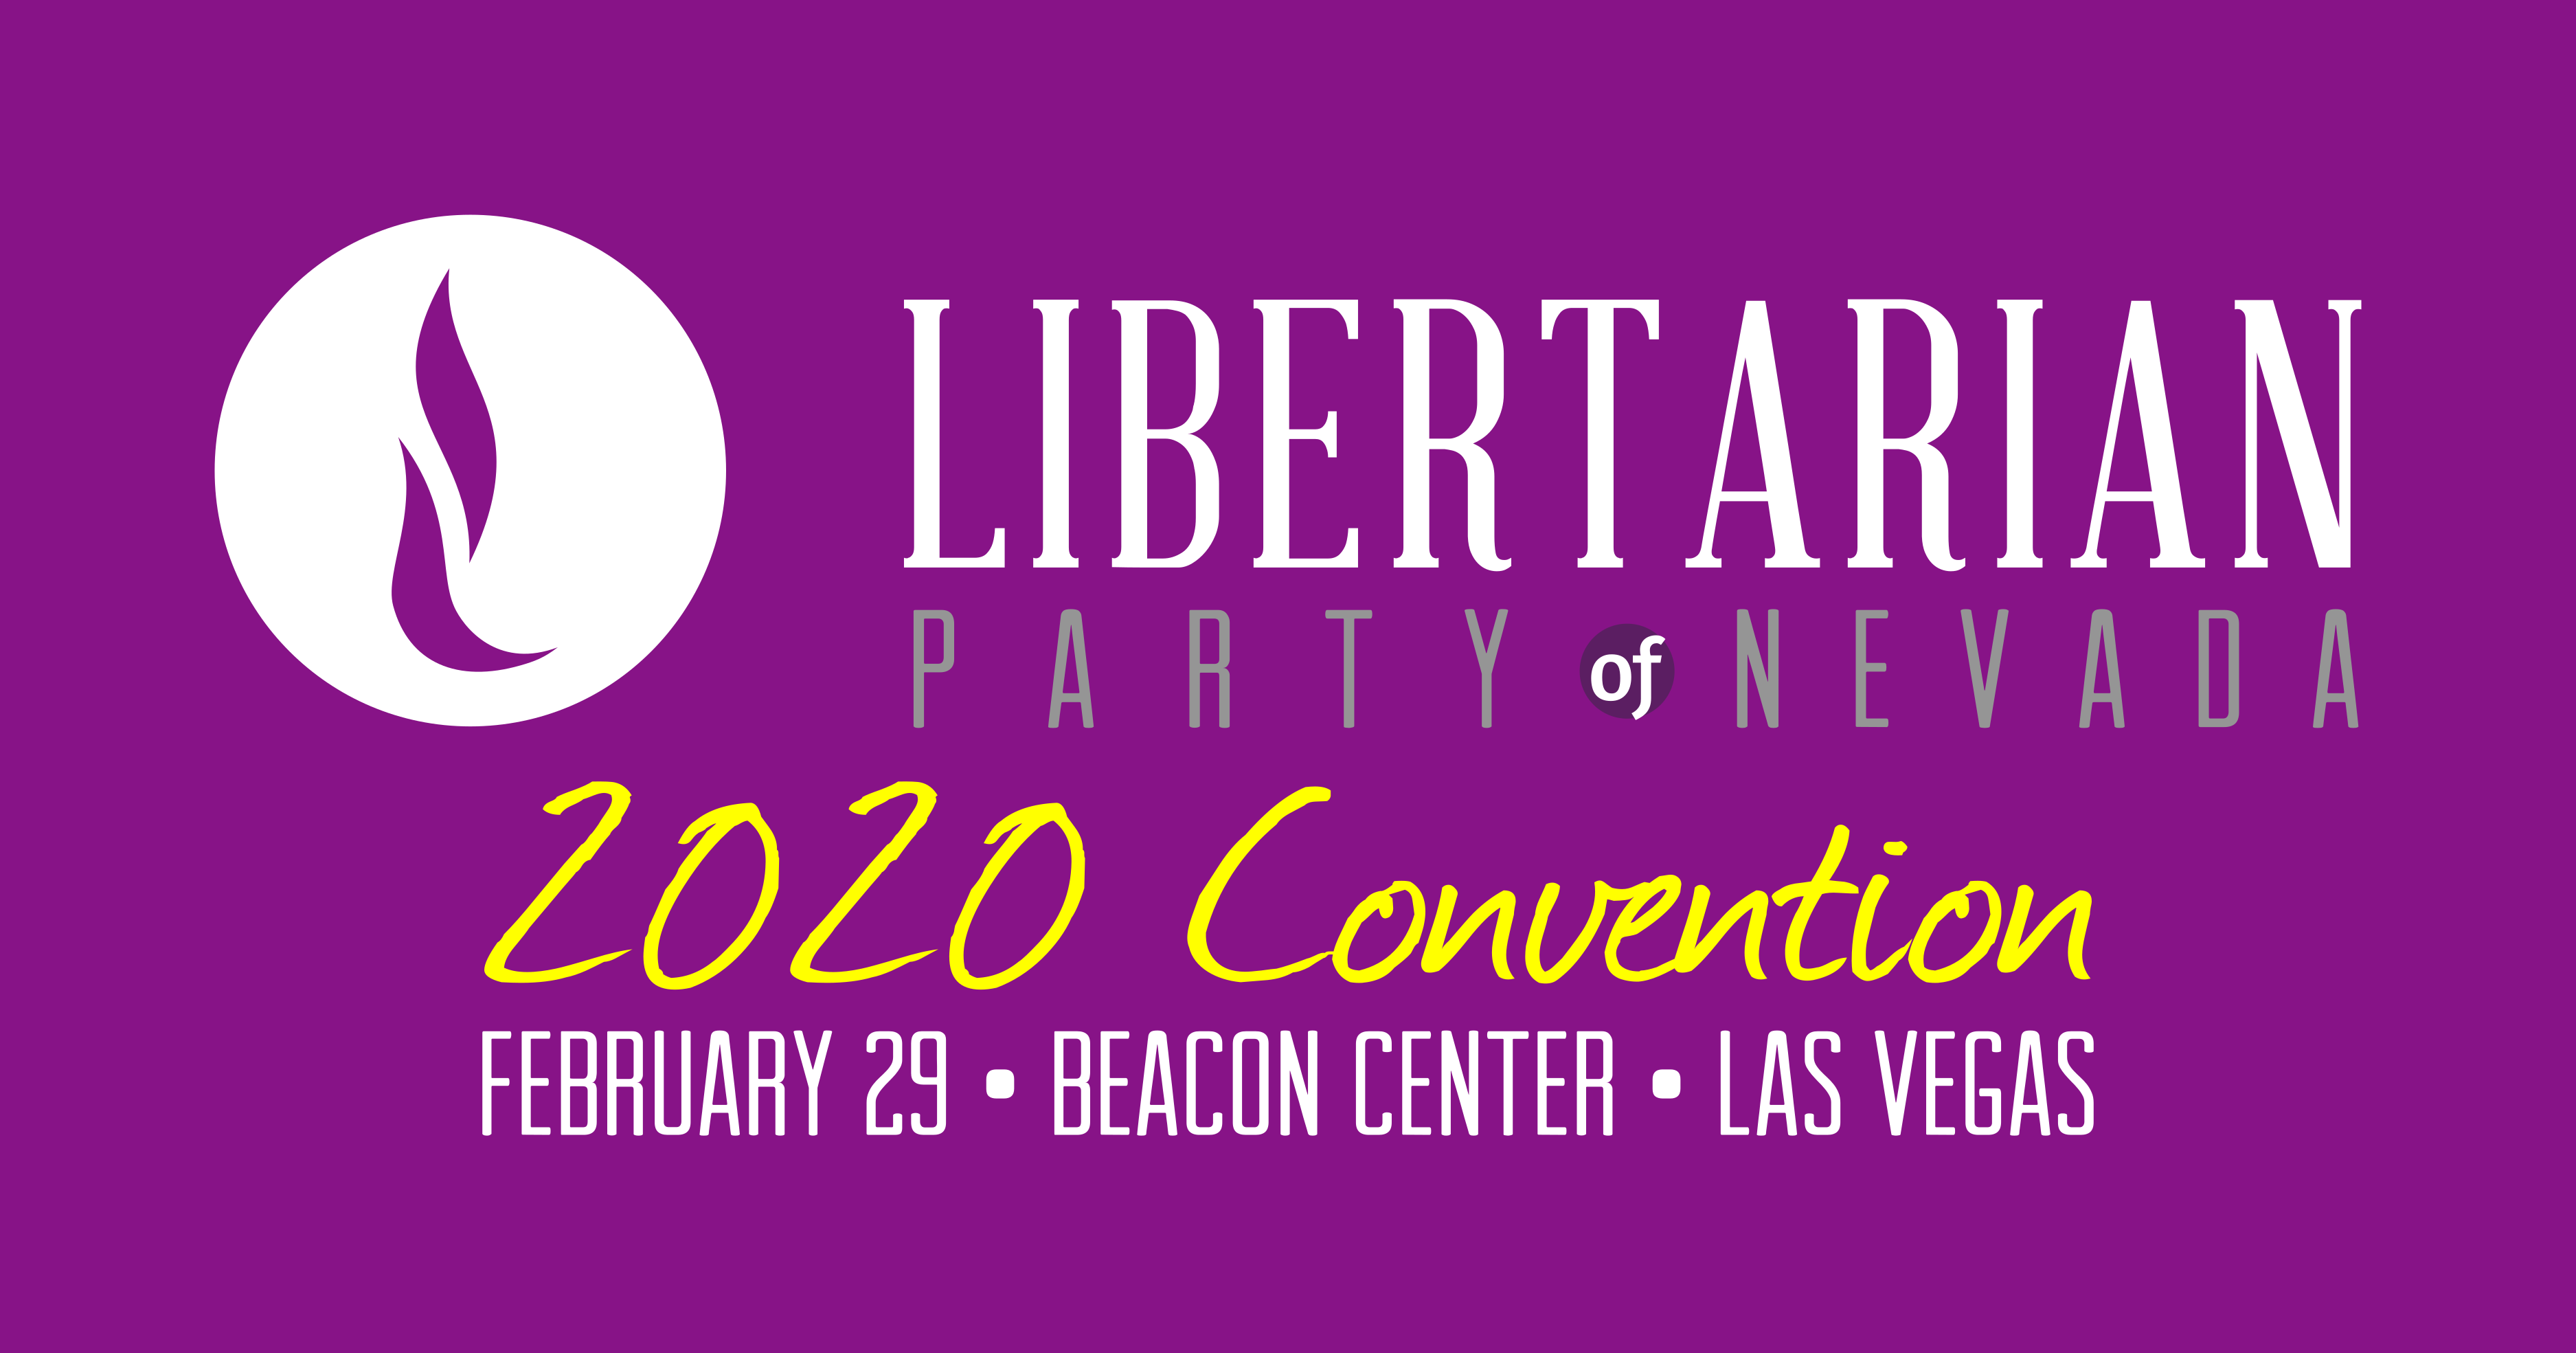 Amber Nevada Wiki the libertarian party of nevada is the fastest growing